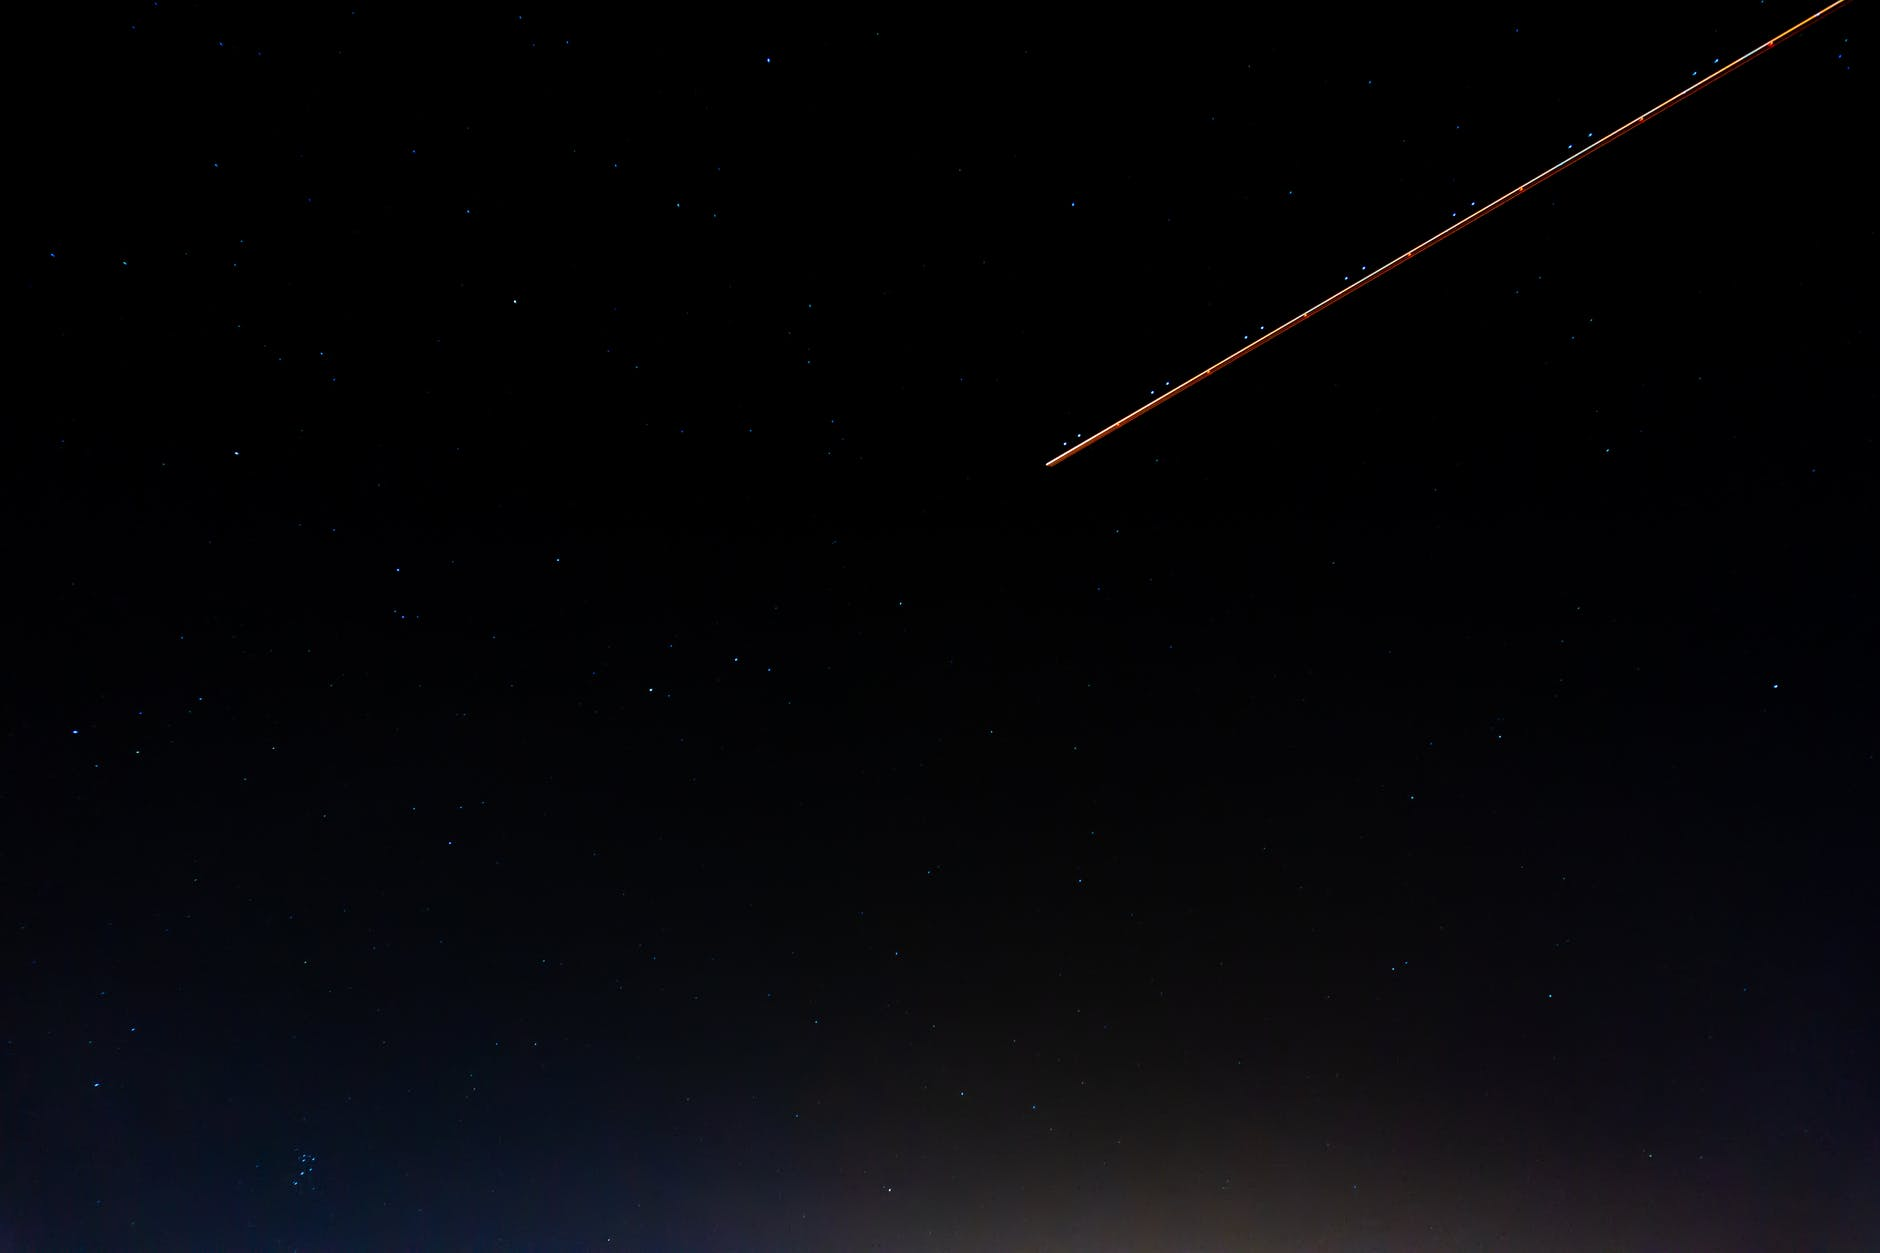 photo of shooting star during night time